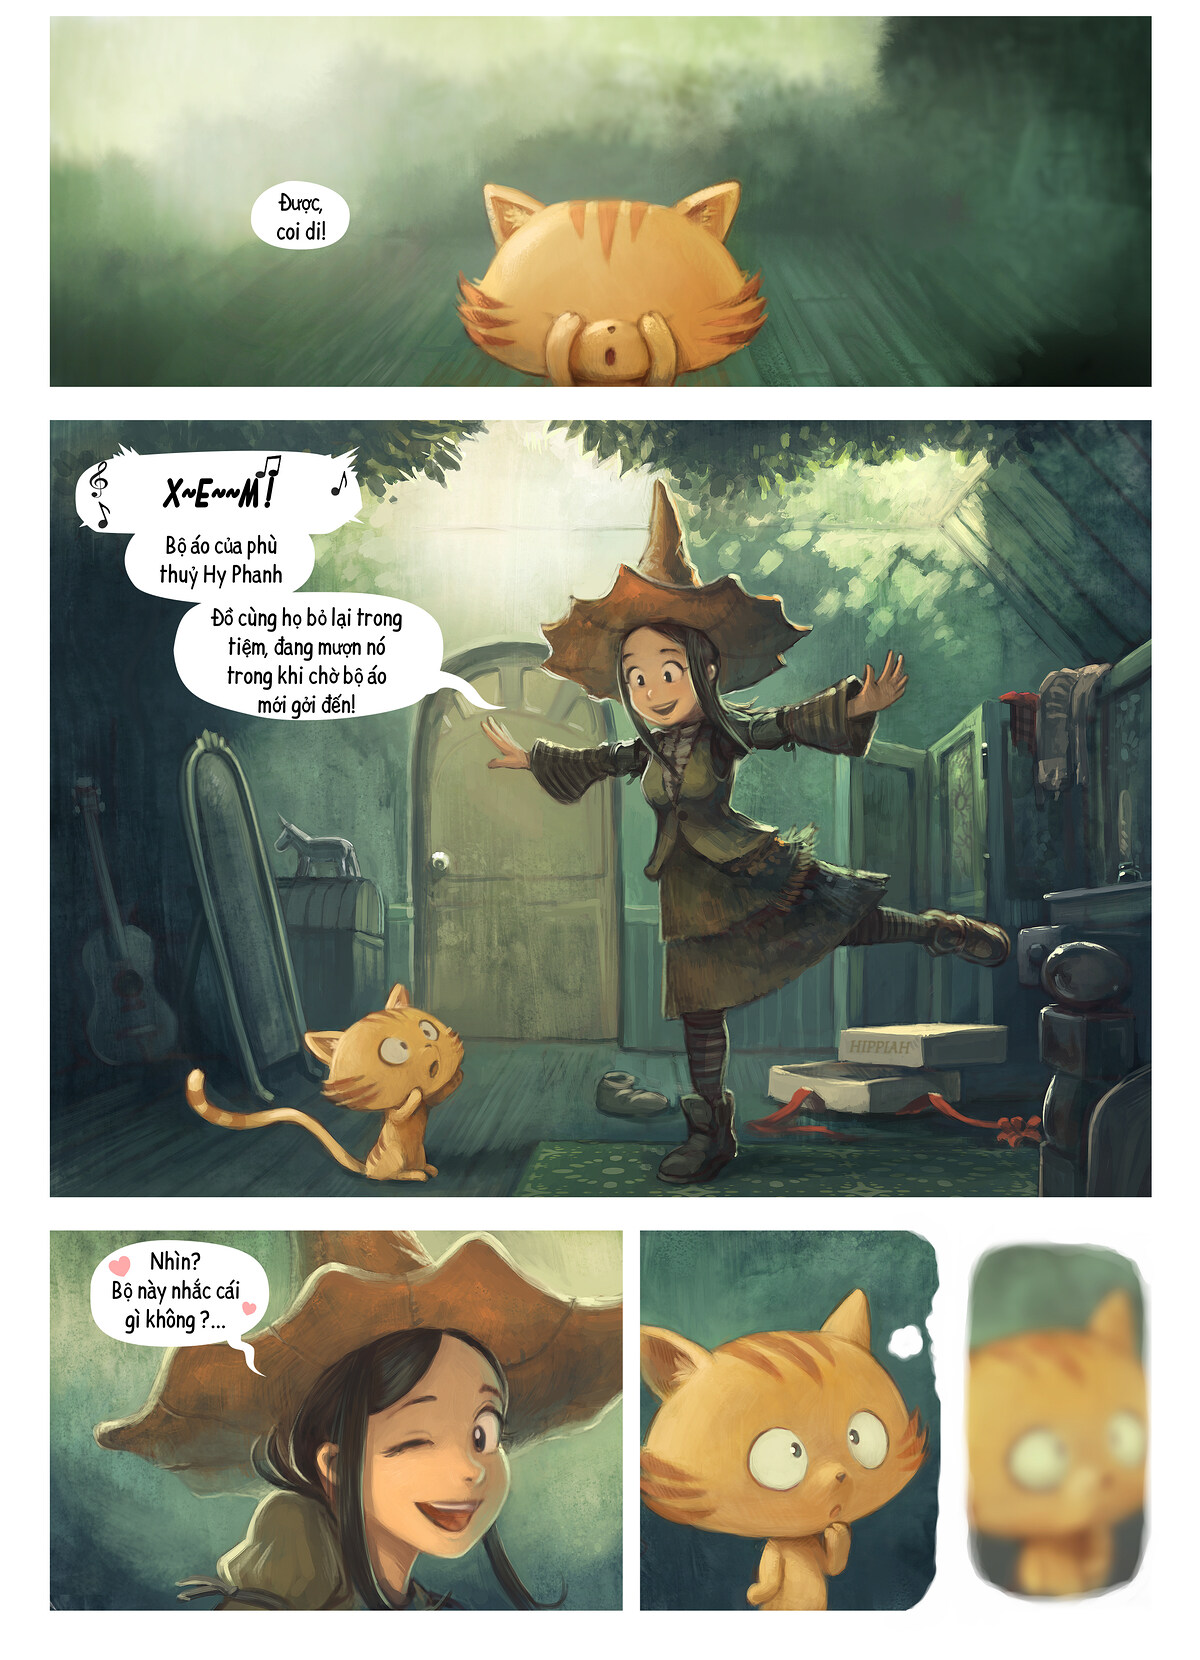 A webcomic page of Pepper&Carrot, Tập 18 [vi], trang 1